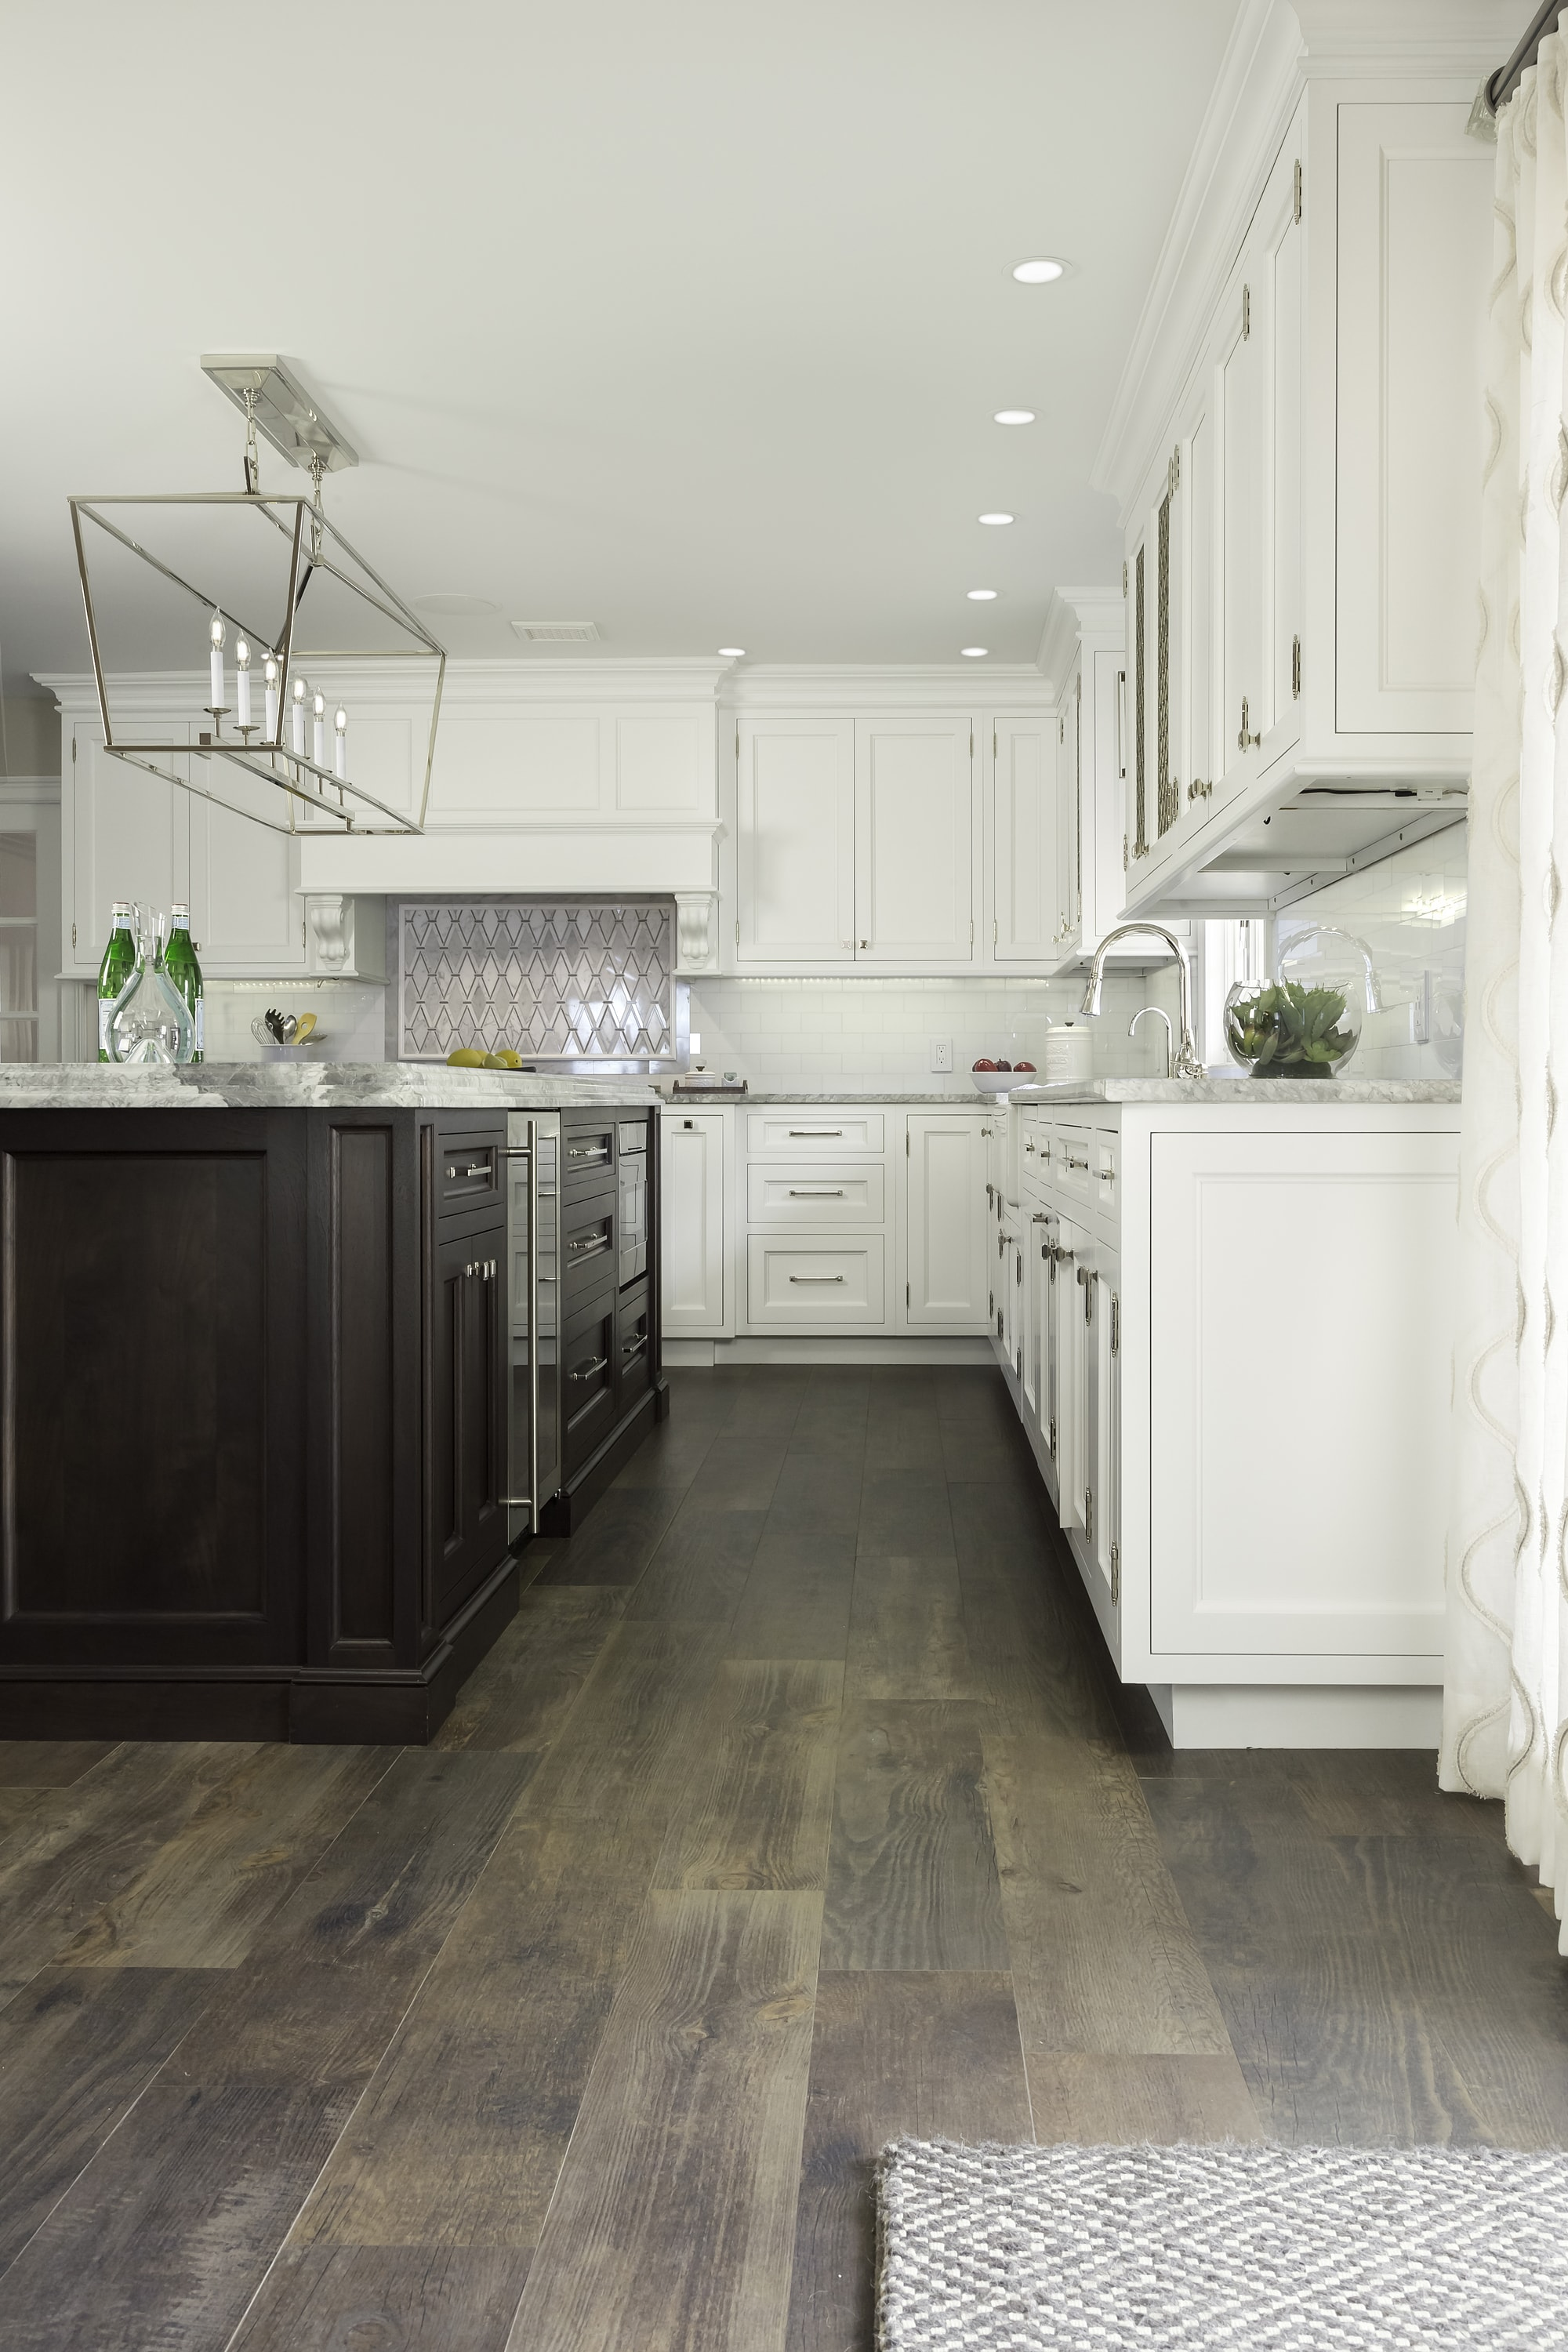 Transitional style kitchen with bright light setting